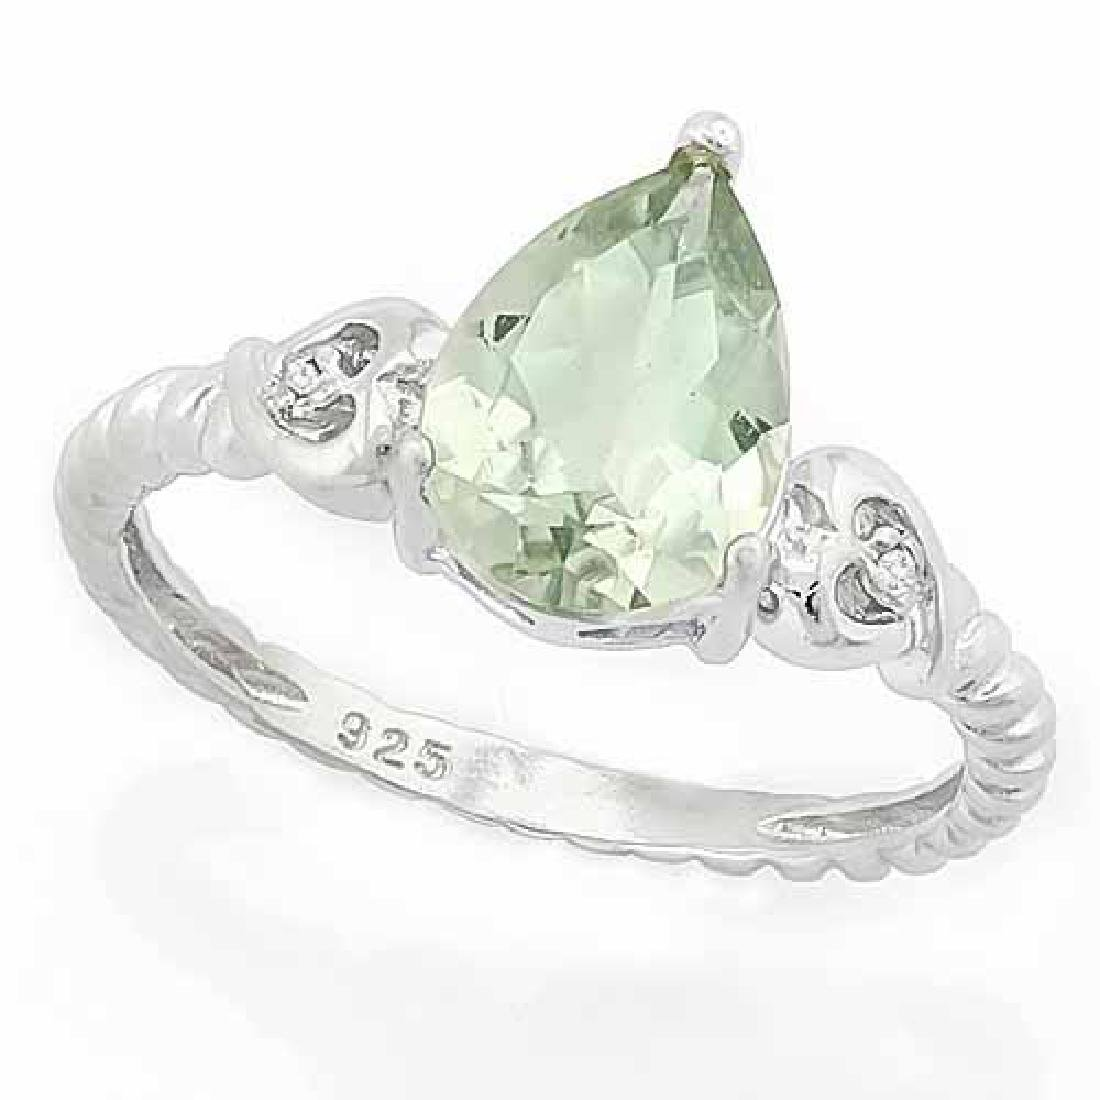 1 1/2 CARAT GREEN AMETHYST & DIAMOND 925 STERLING SILVE